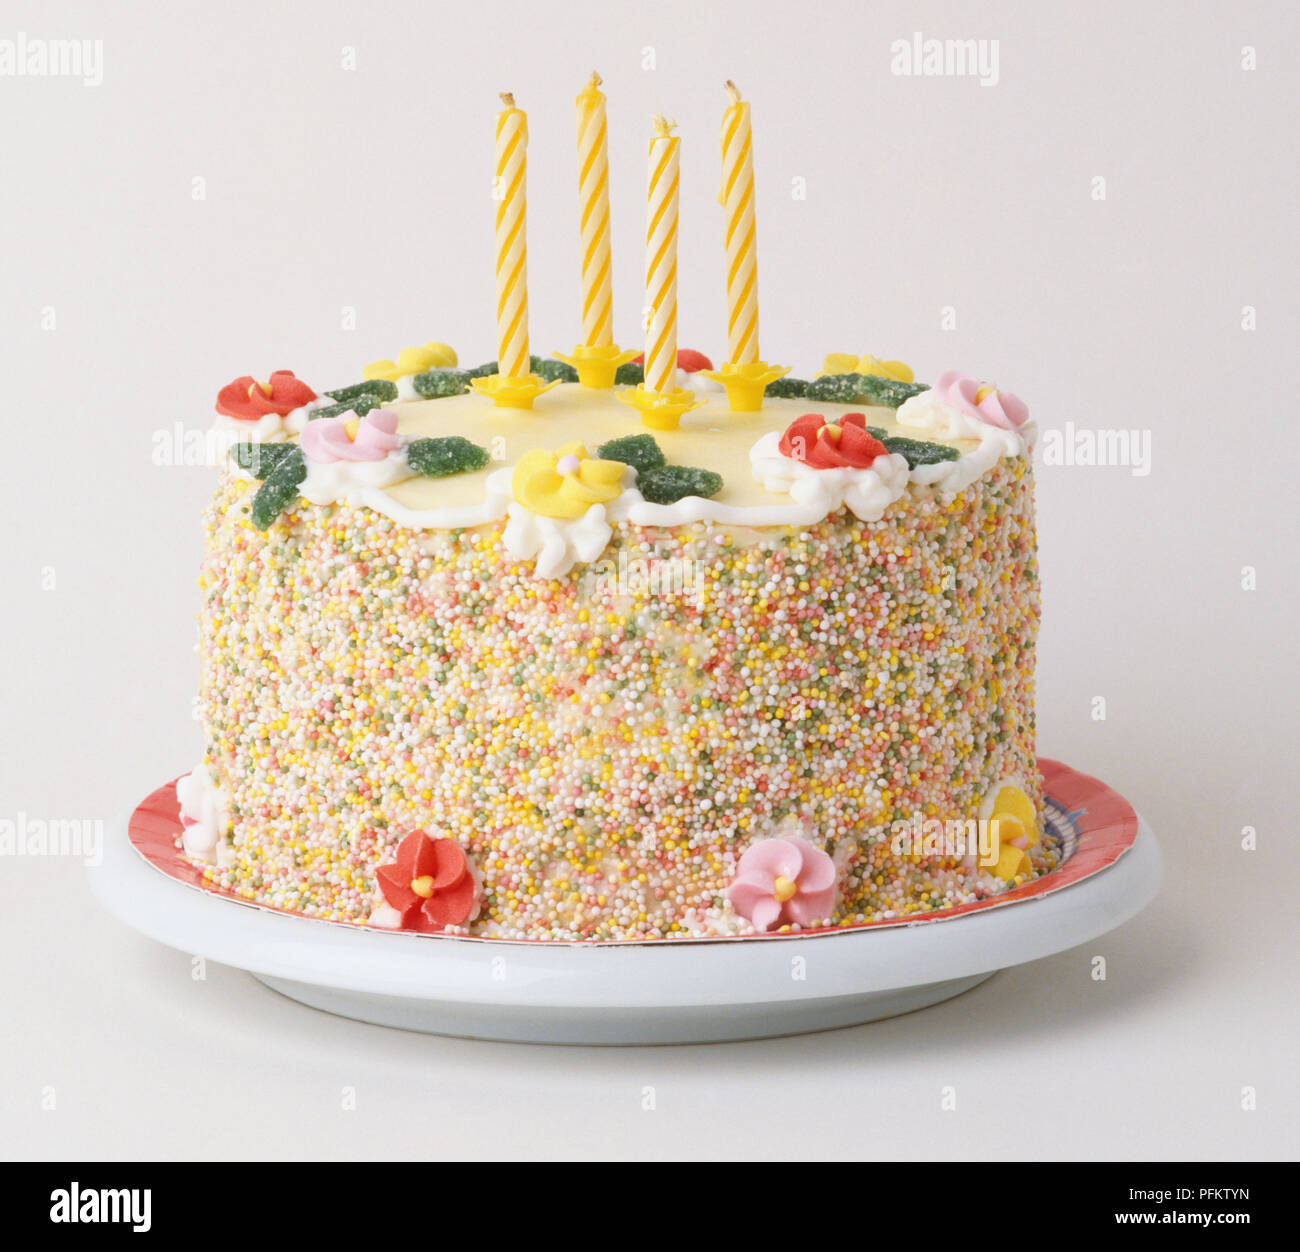 Birthday Cake Decorated With Candy Flowers Four Candles And A Border Of Multi Coloured Sprinkles